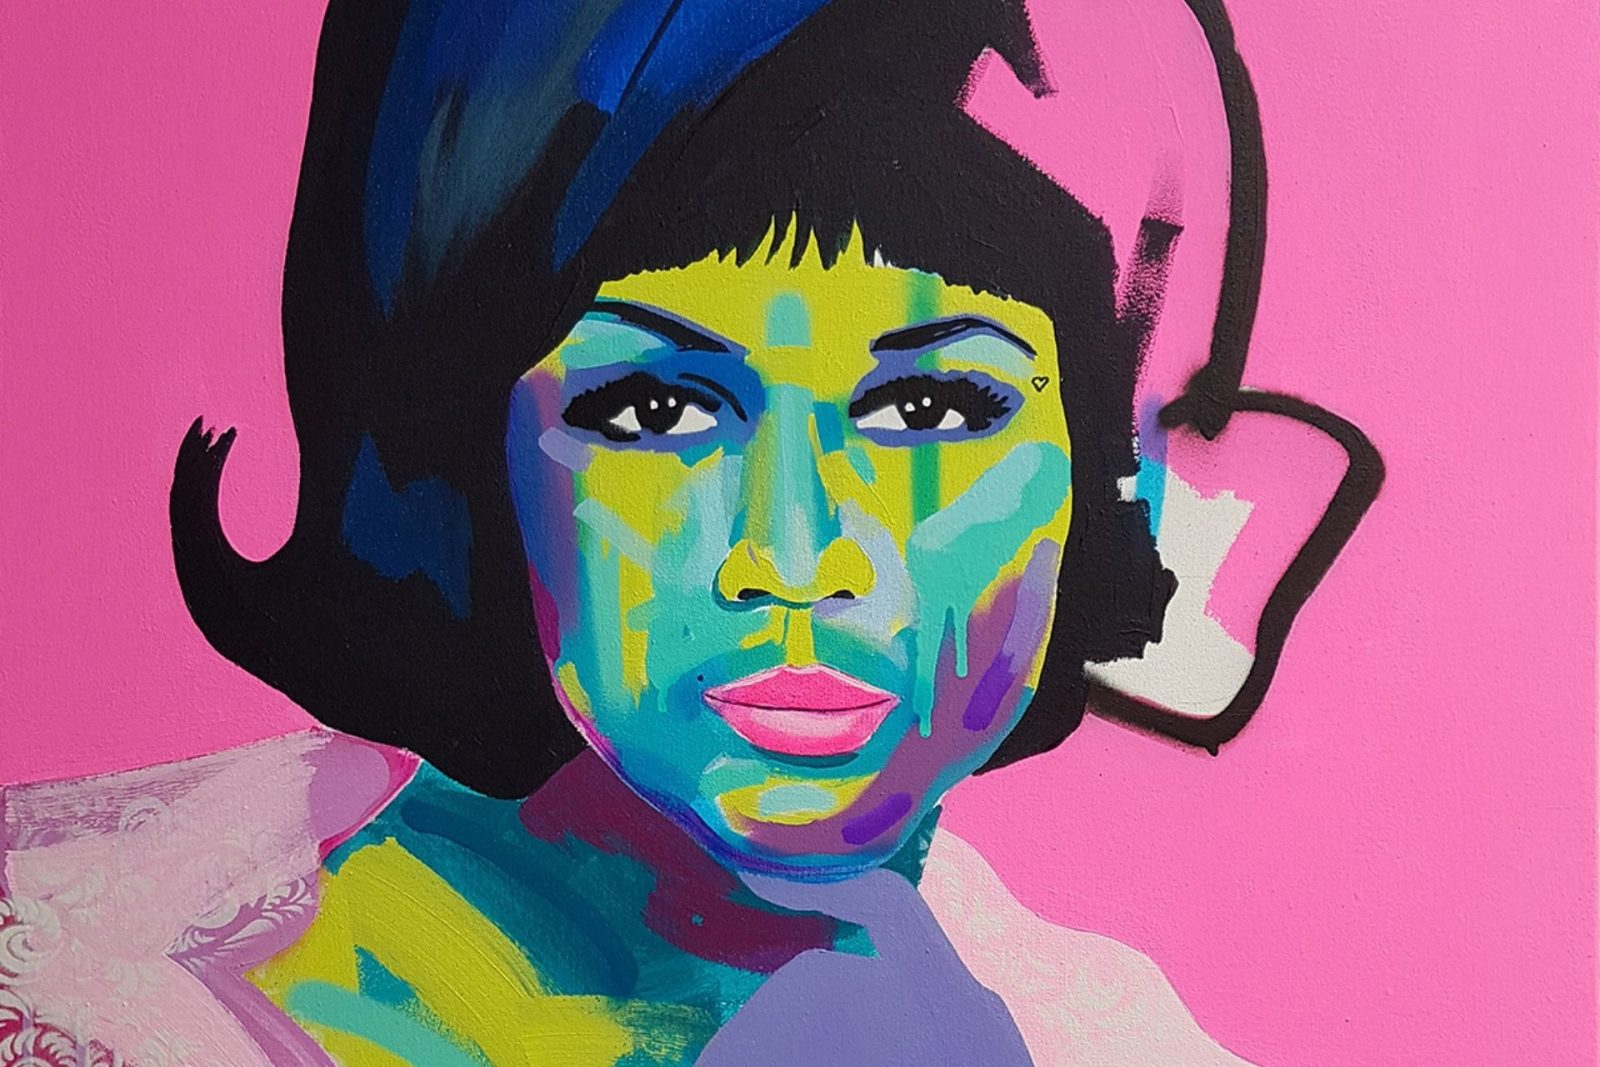 colorful pop art by Tim Fowler